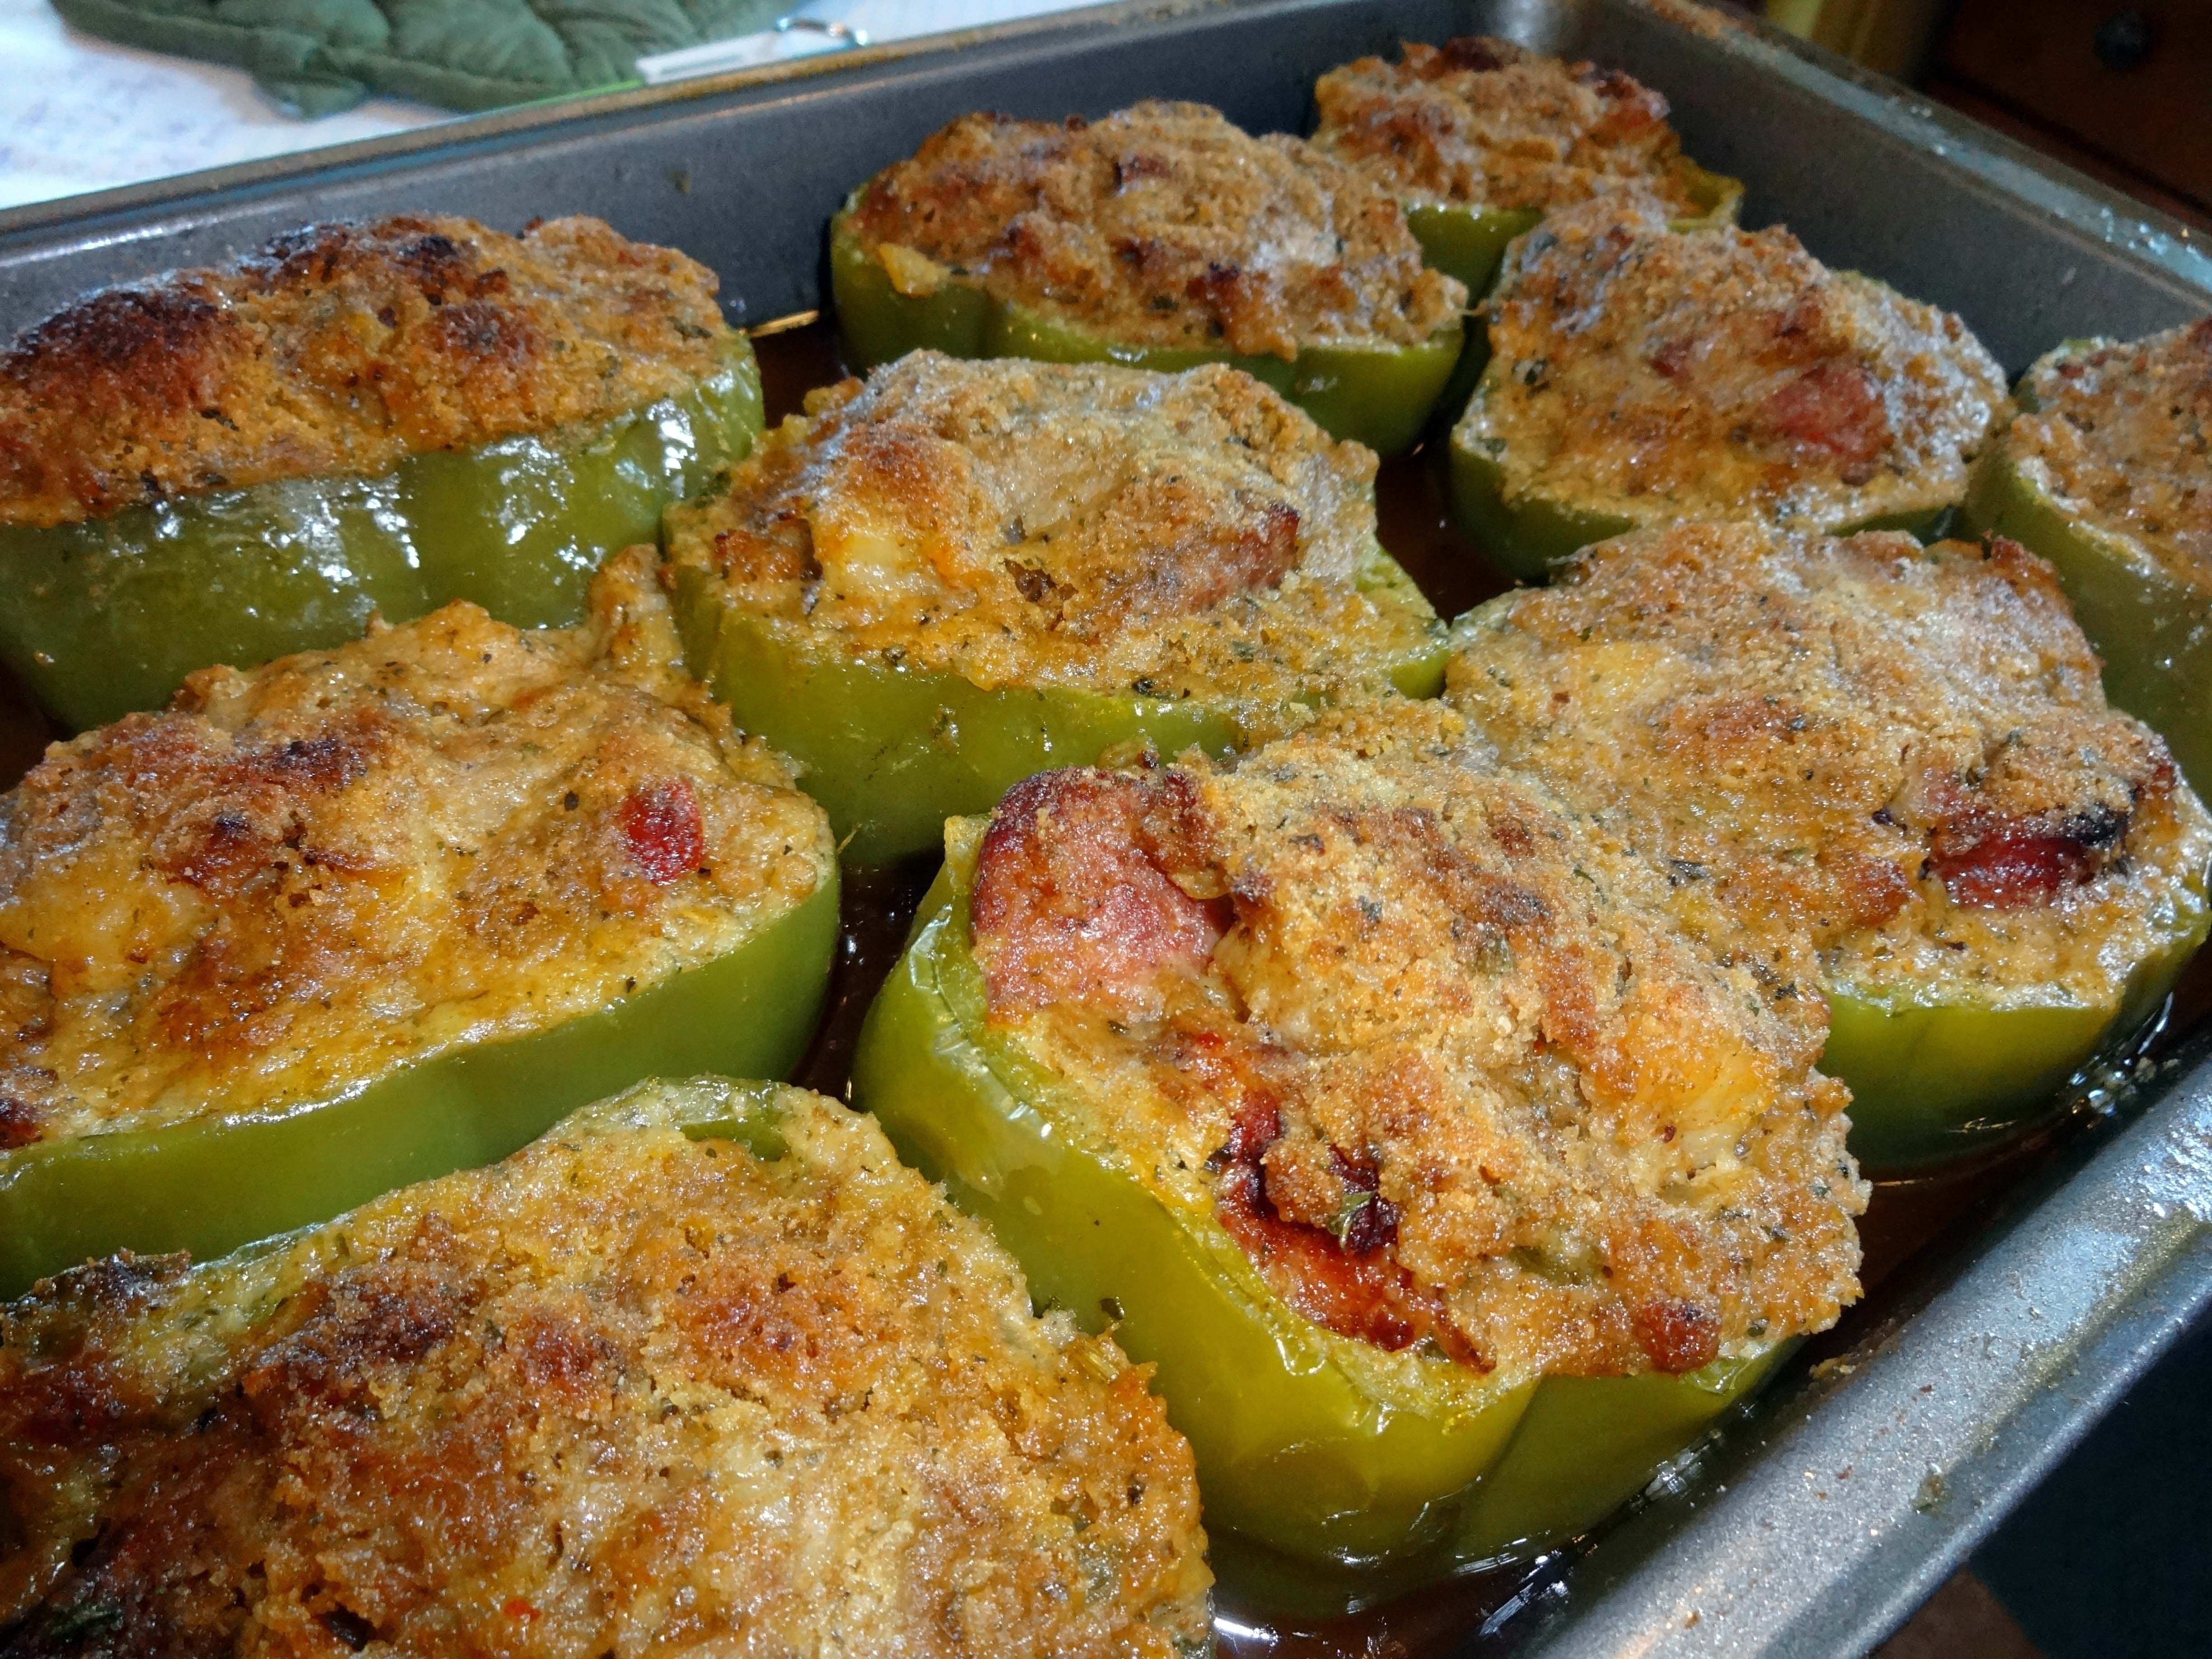 Stuffed Pepper Recipe New Orleans Creole Style Megan Braden Perry Stuffed Peppers Recipes Tasty Dishes